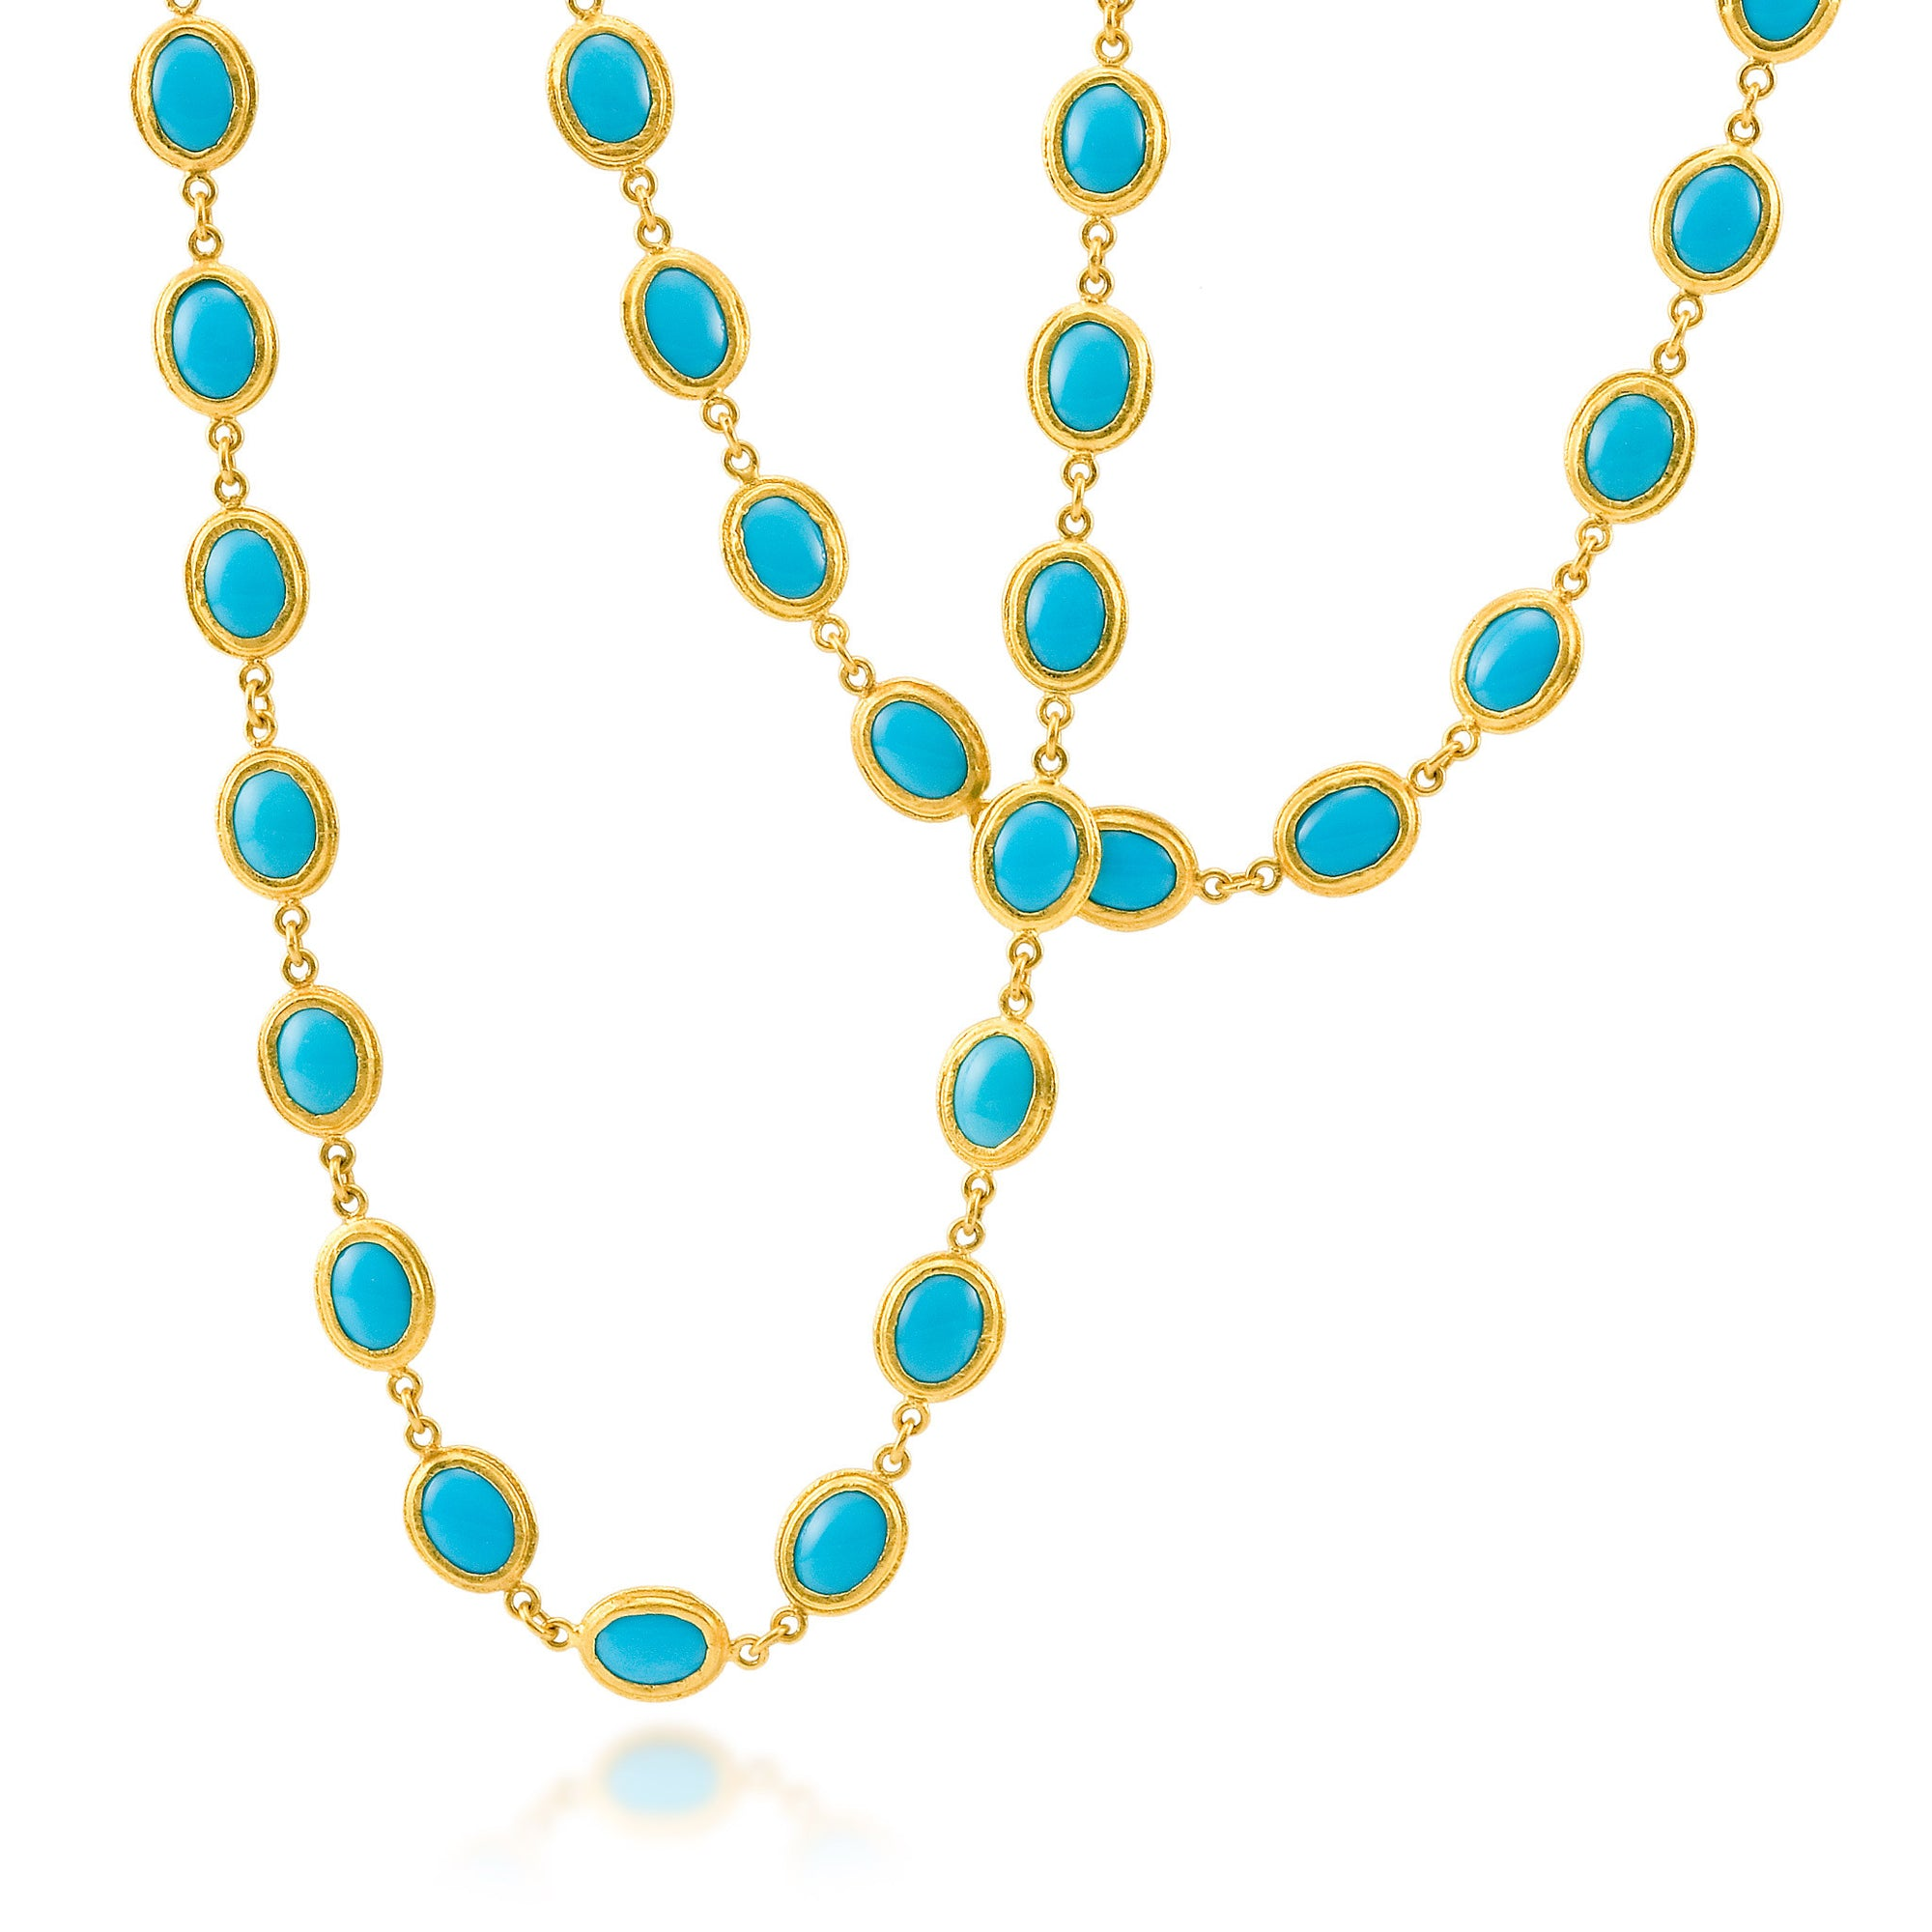 Fabulous ARA 24k Yellow Gold Long Turquoise Necklace - Desires by Mikolay KW43